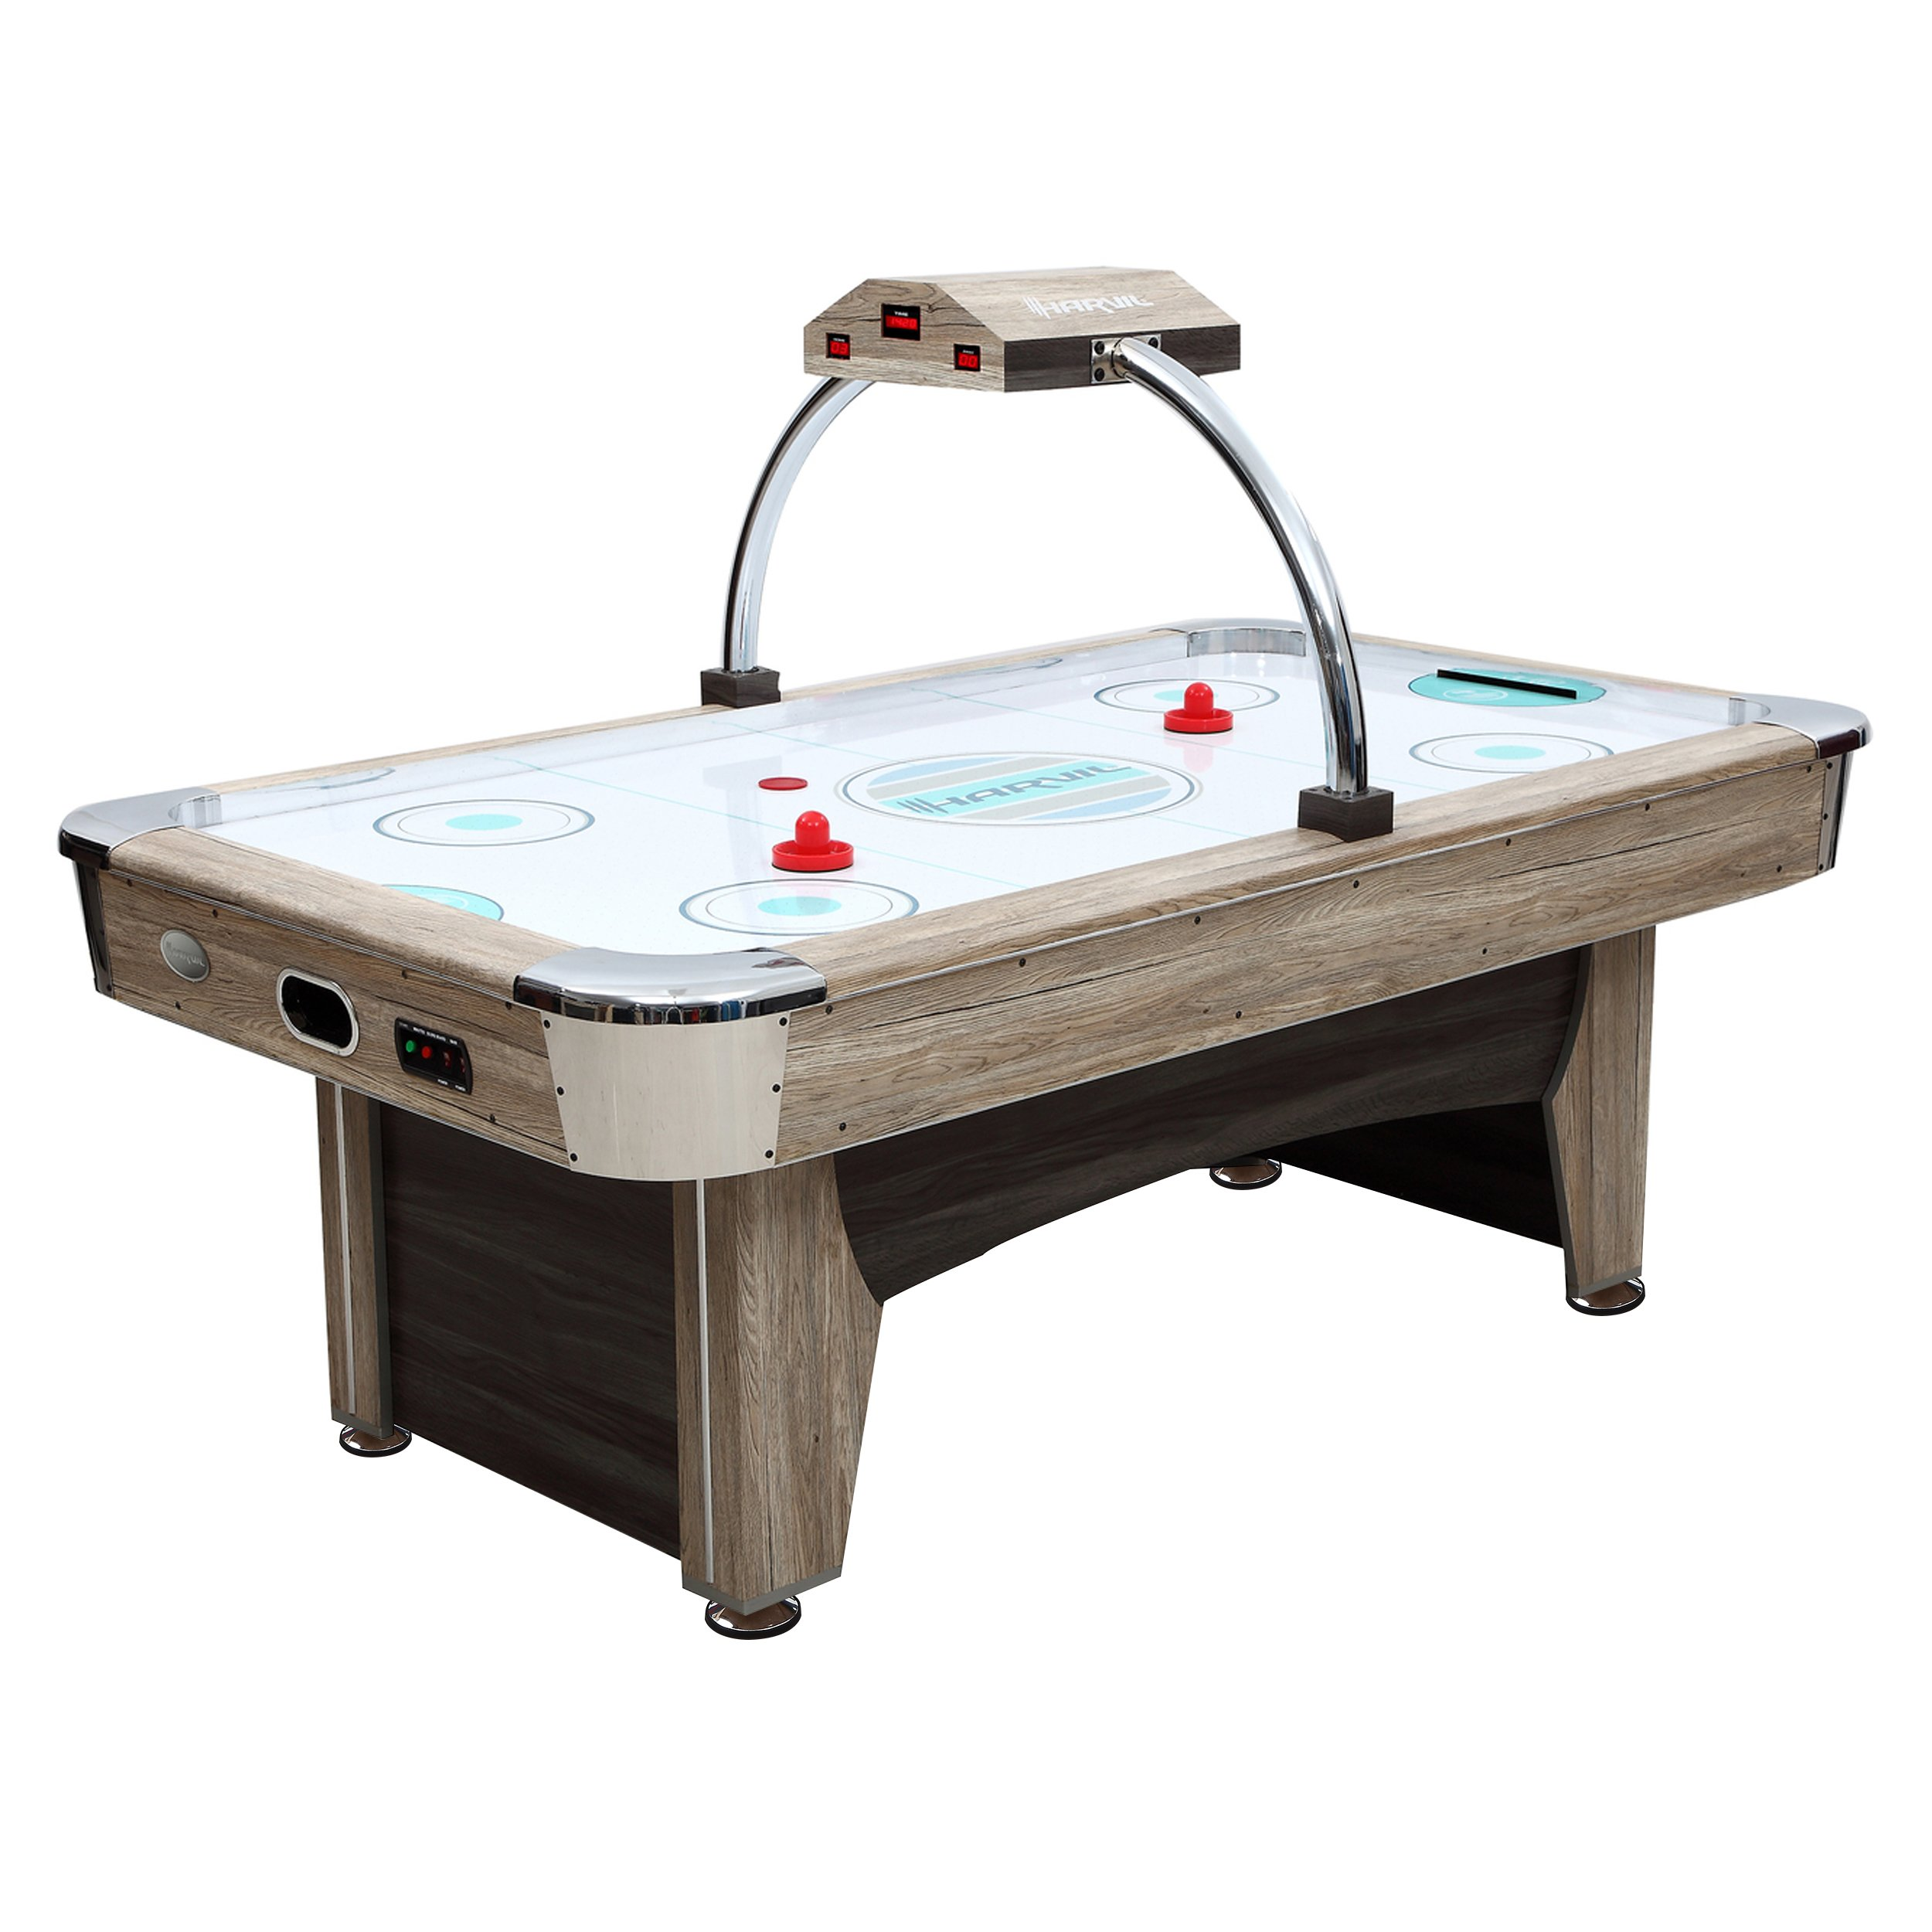 Harvil Beachcomber 7 Feet Air Hockey Table with Overhead Scorer, 2 Powerful Electronic Blowers, and 4 Pucks and 2 Pushers